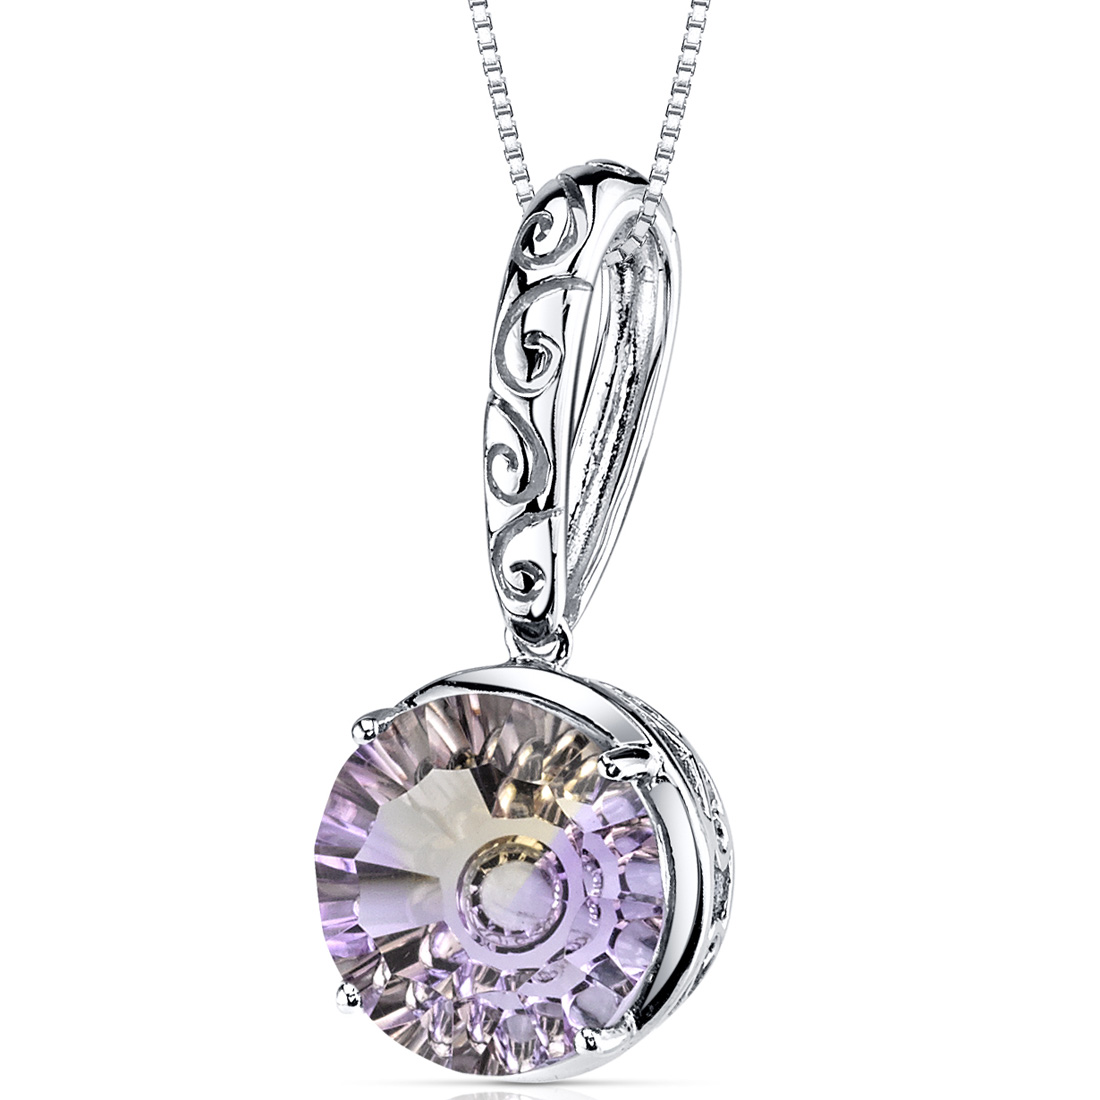 peora Ametrine Pendant 14Kt White Gold 4.6 Cts P9226 at Sears.com